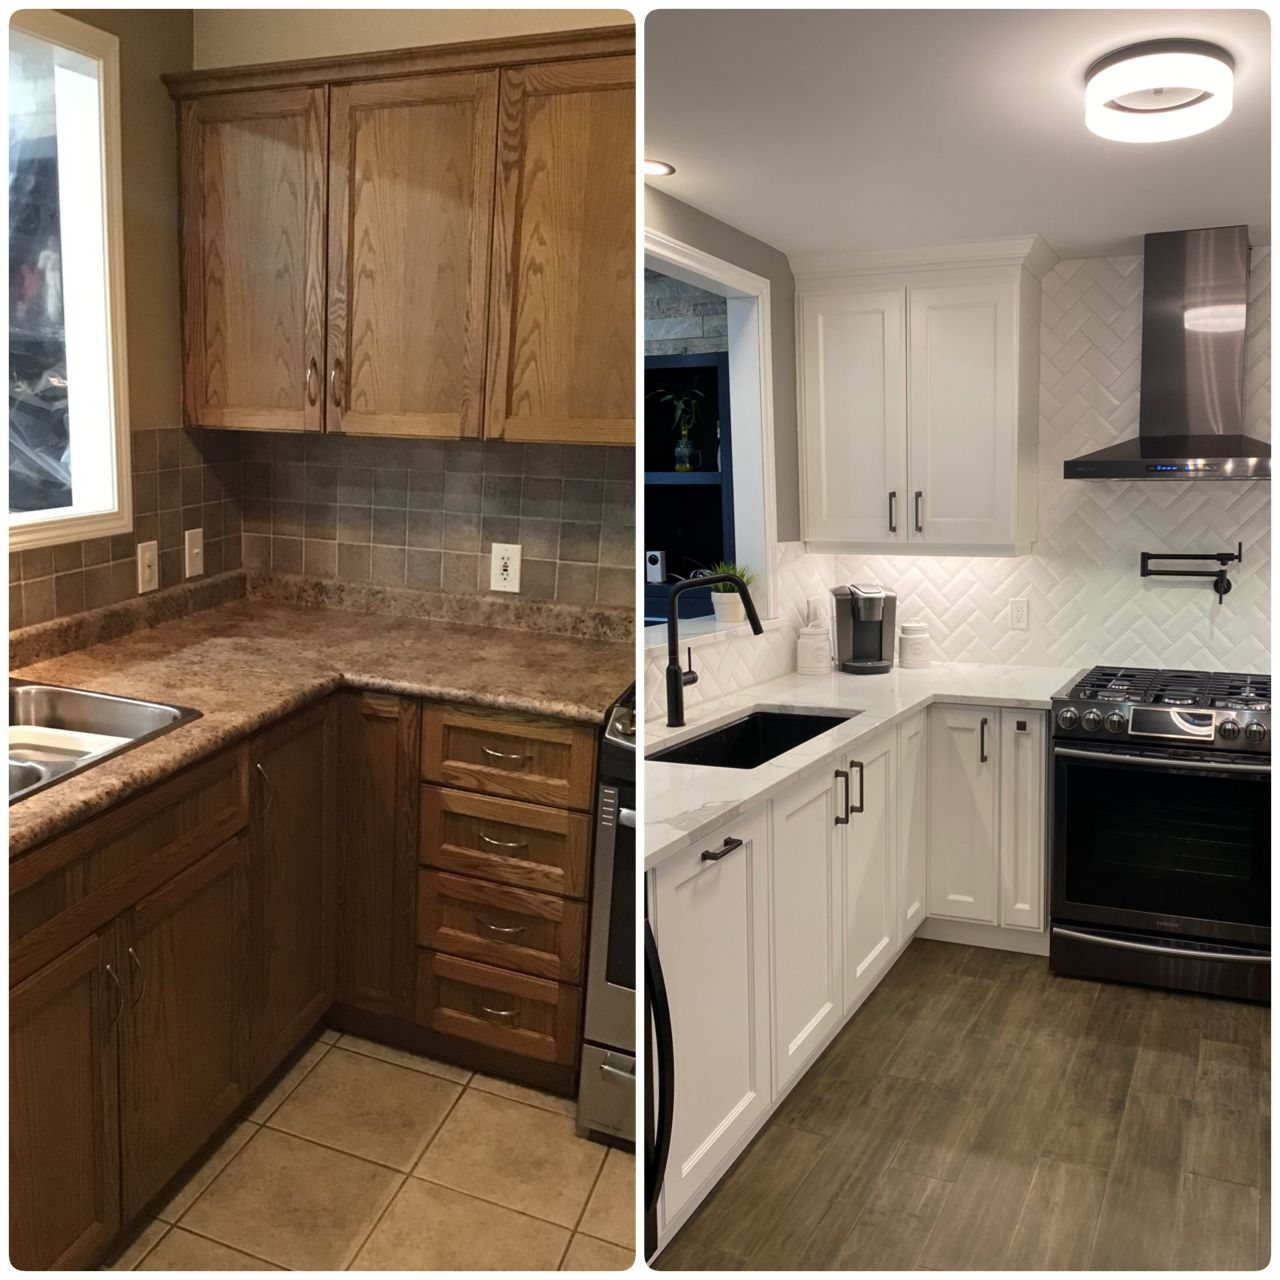 Before And After Dyi Kitchen Reno In 2020 Kitchen Black Stainless Appliances Kitchen Reno